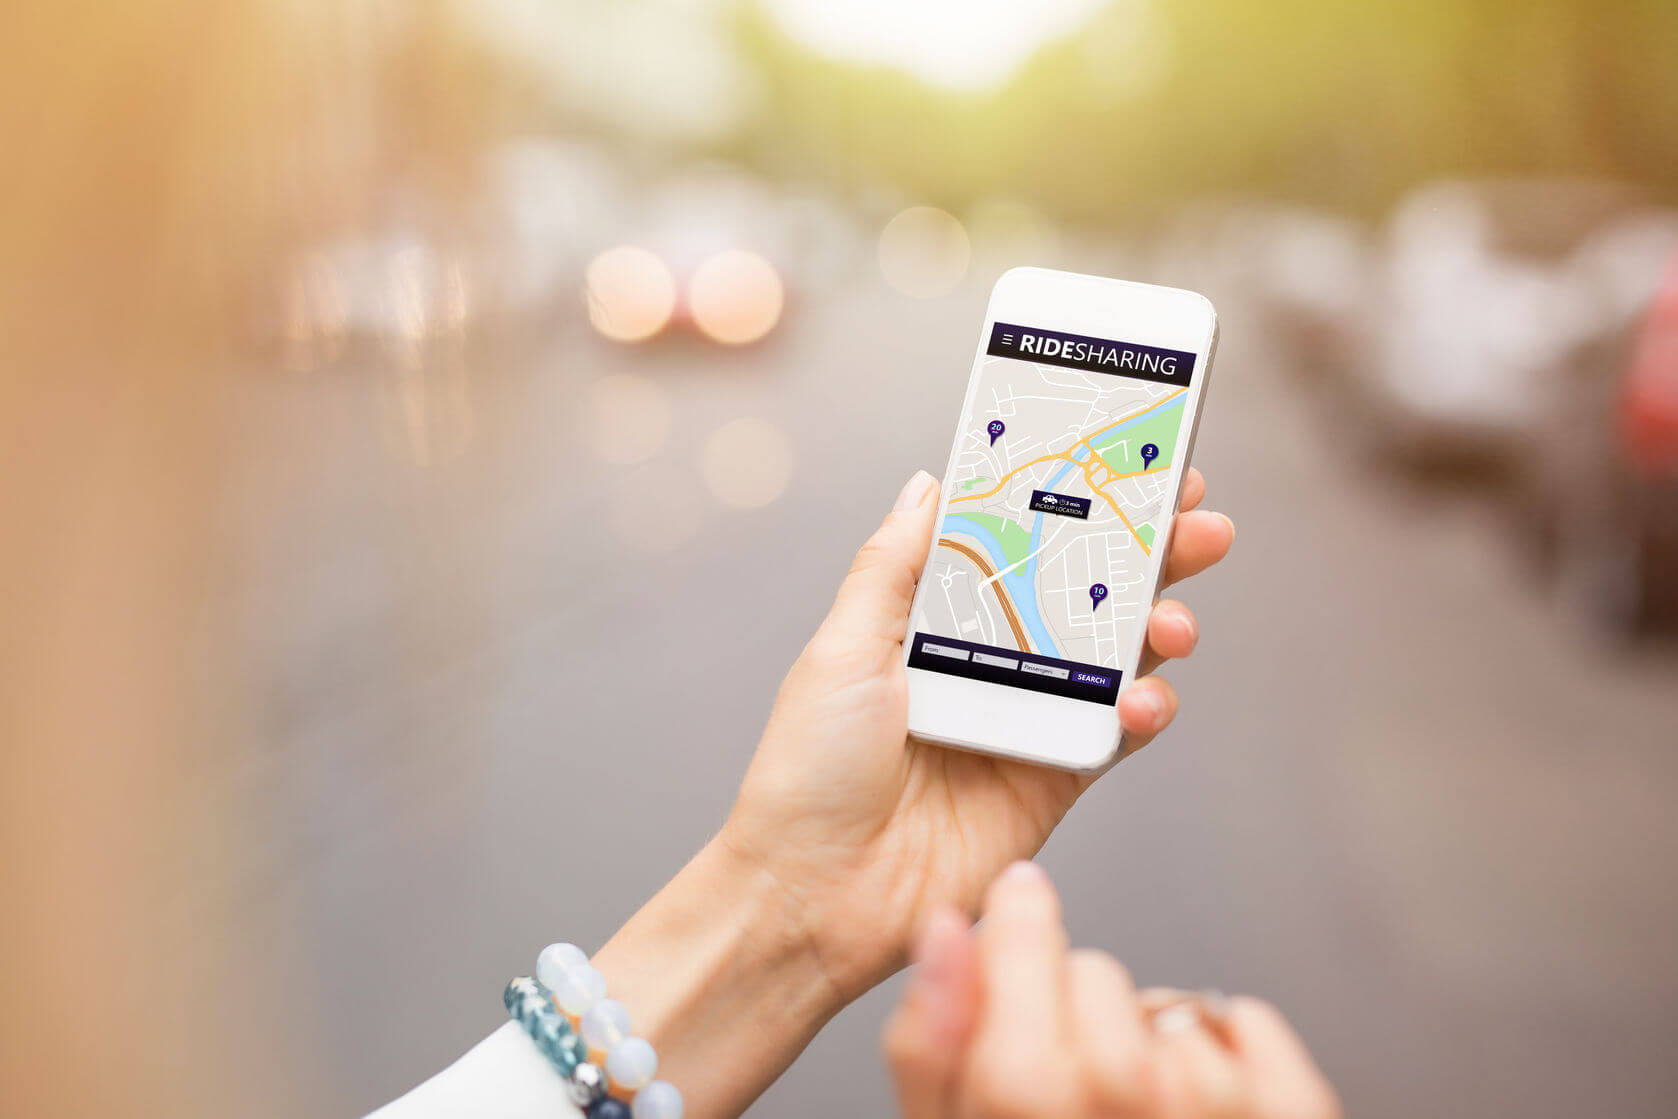 Business Travelers Increasingly Moving To Sharing Economy